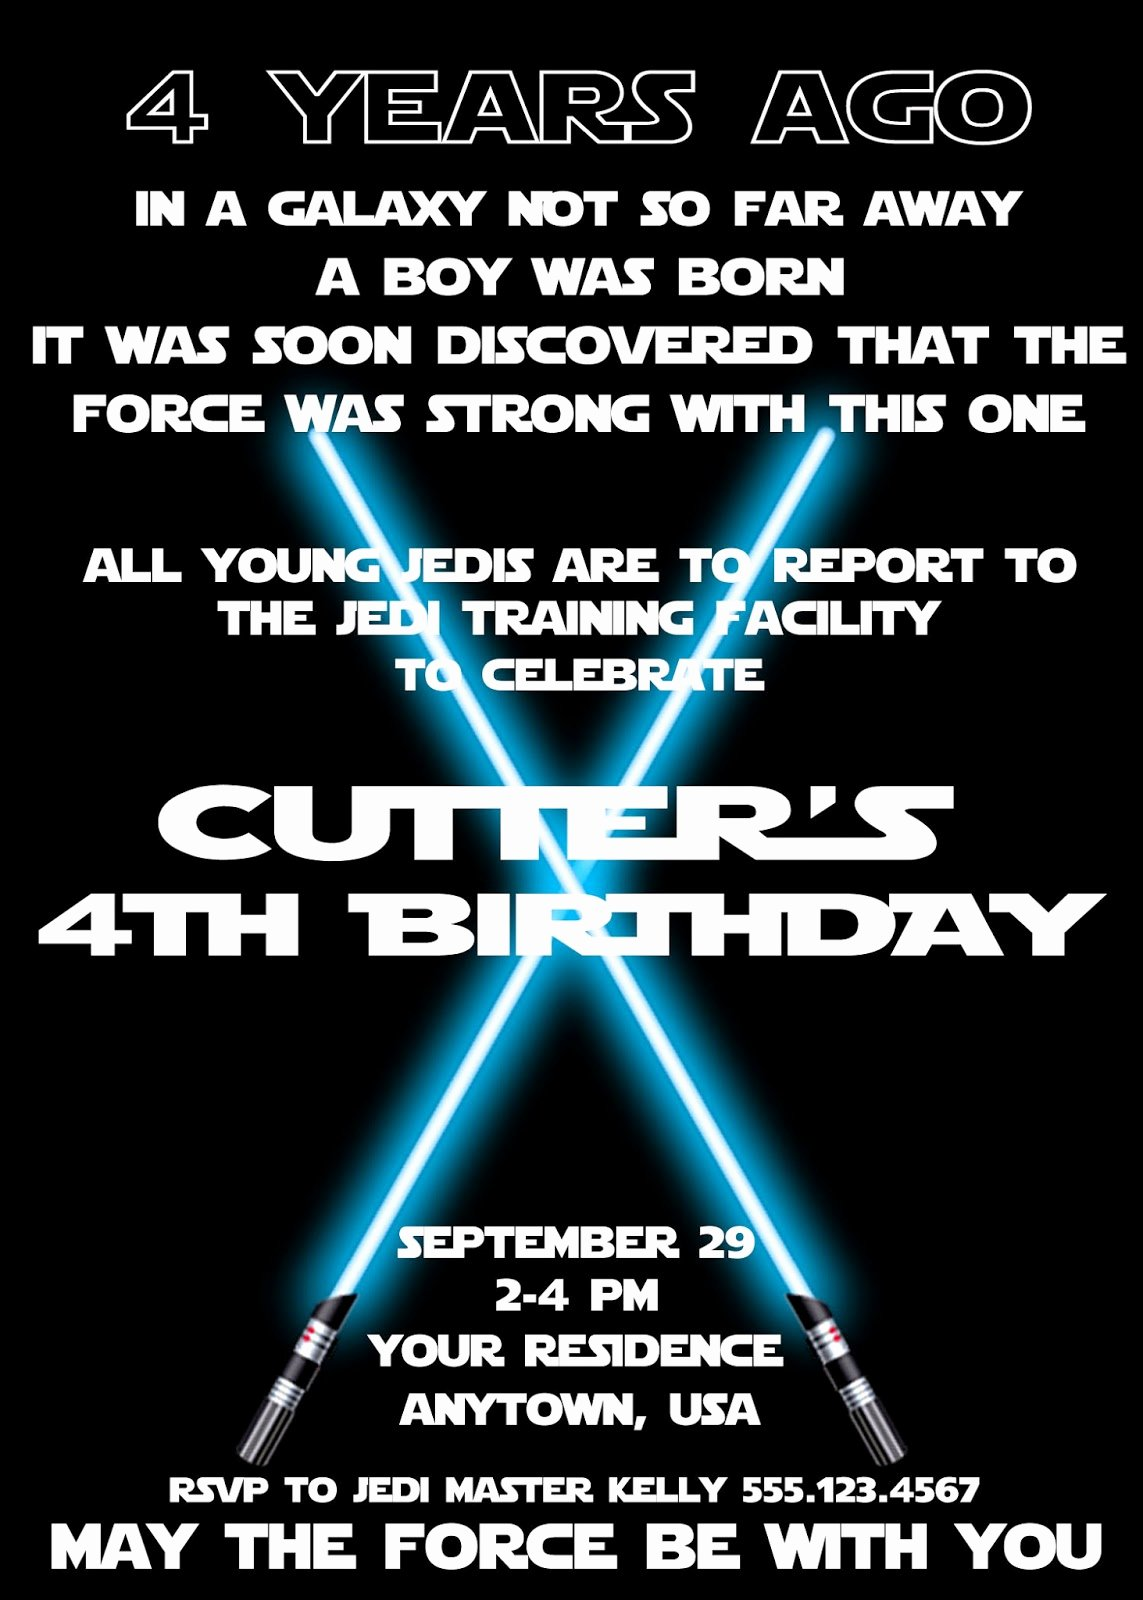 Stars Wars Birthday Invitations Elegant Plan An Amazing Star Wars Birthday Party